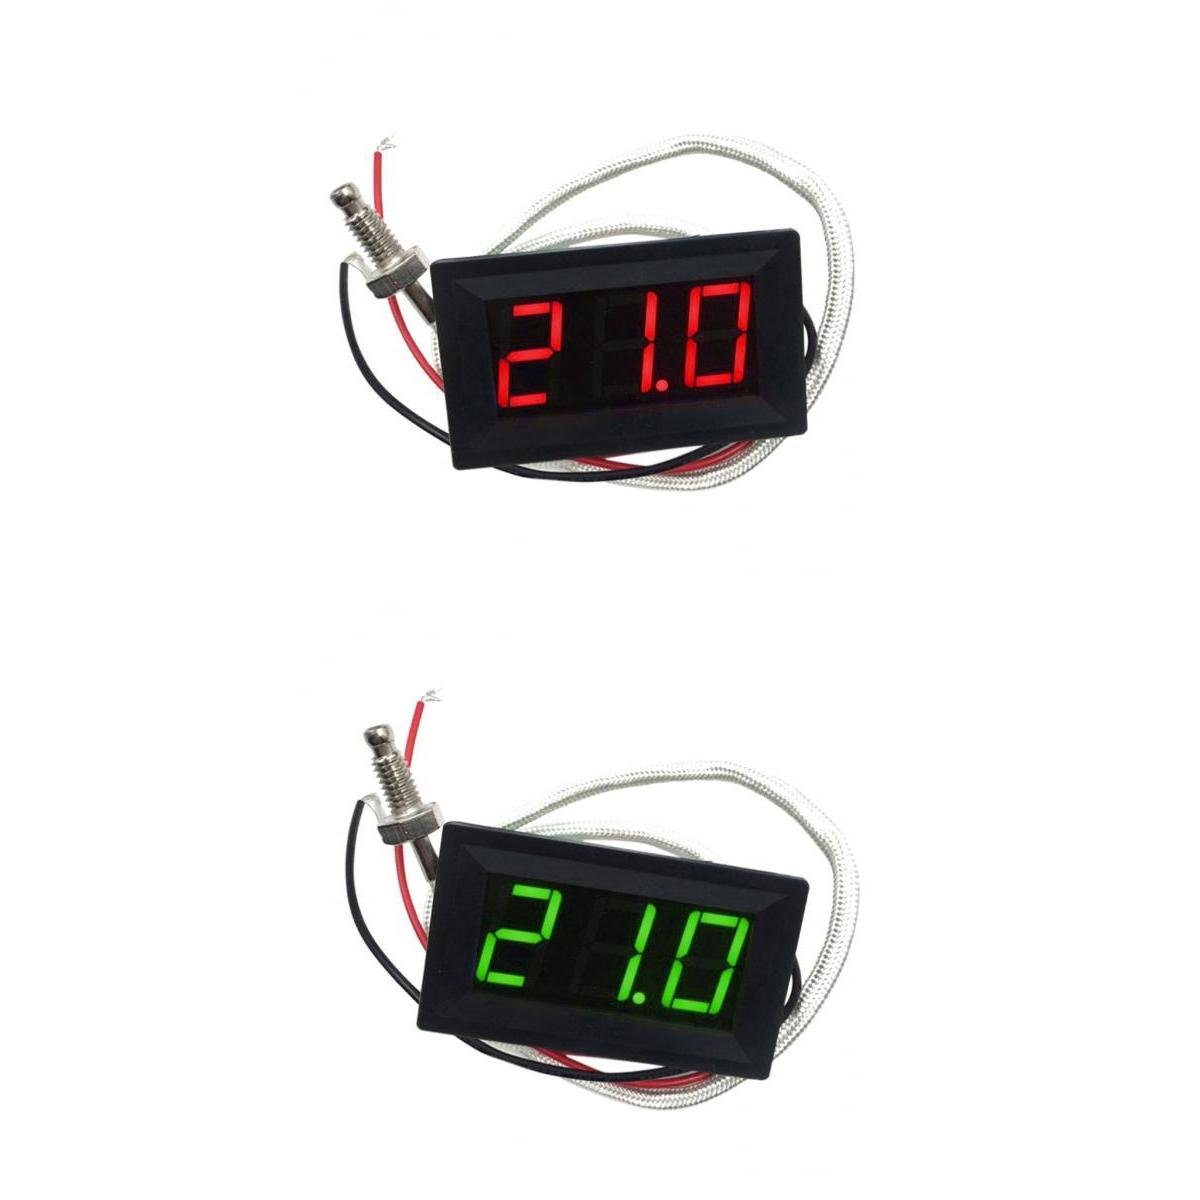 MagiDeal 2 Pieces DC 12V -30 to 800 Celsius Digital LED Thermometer Temperature Detector Meter non-brand